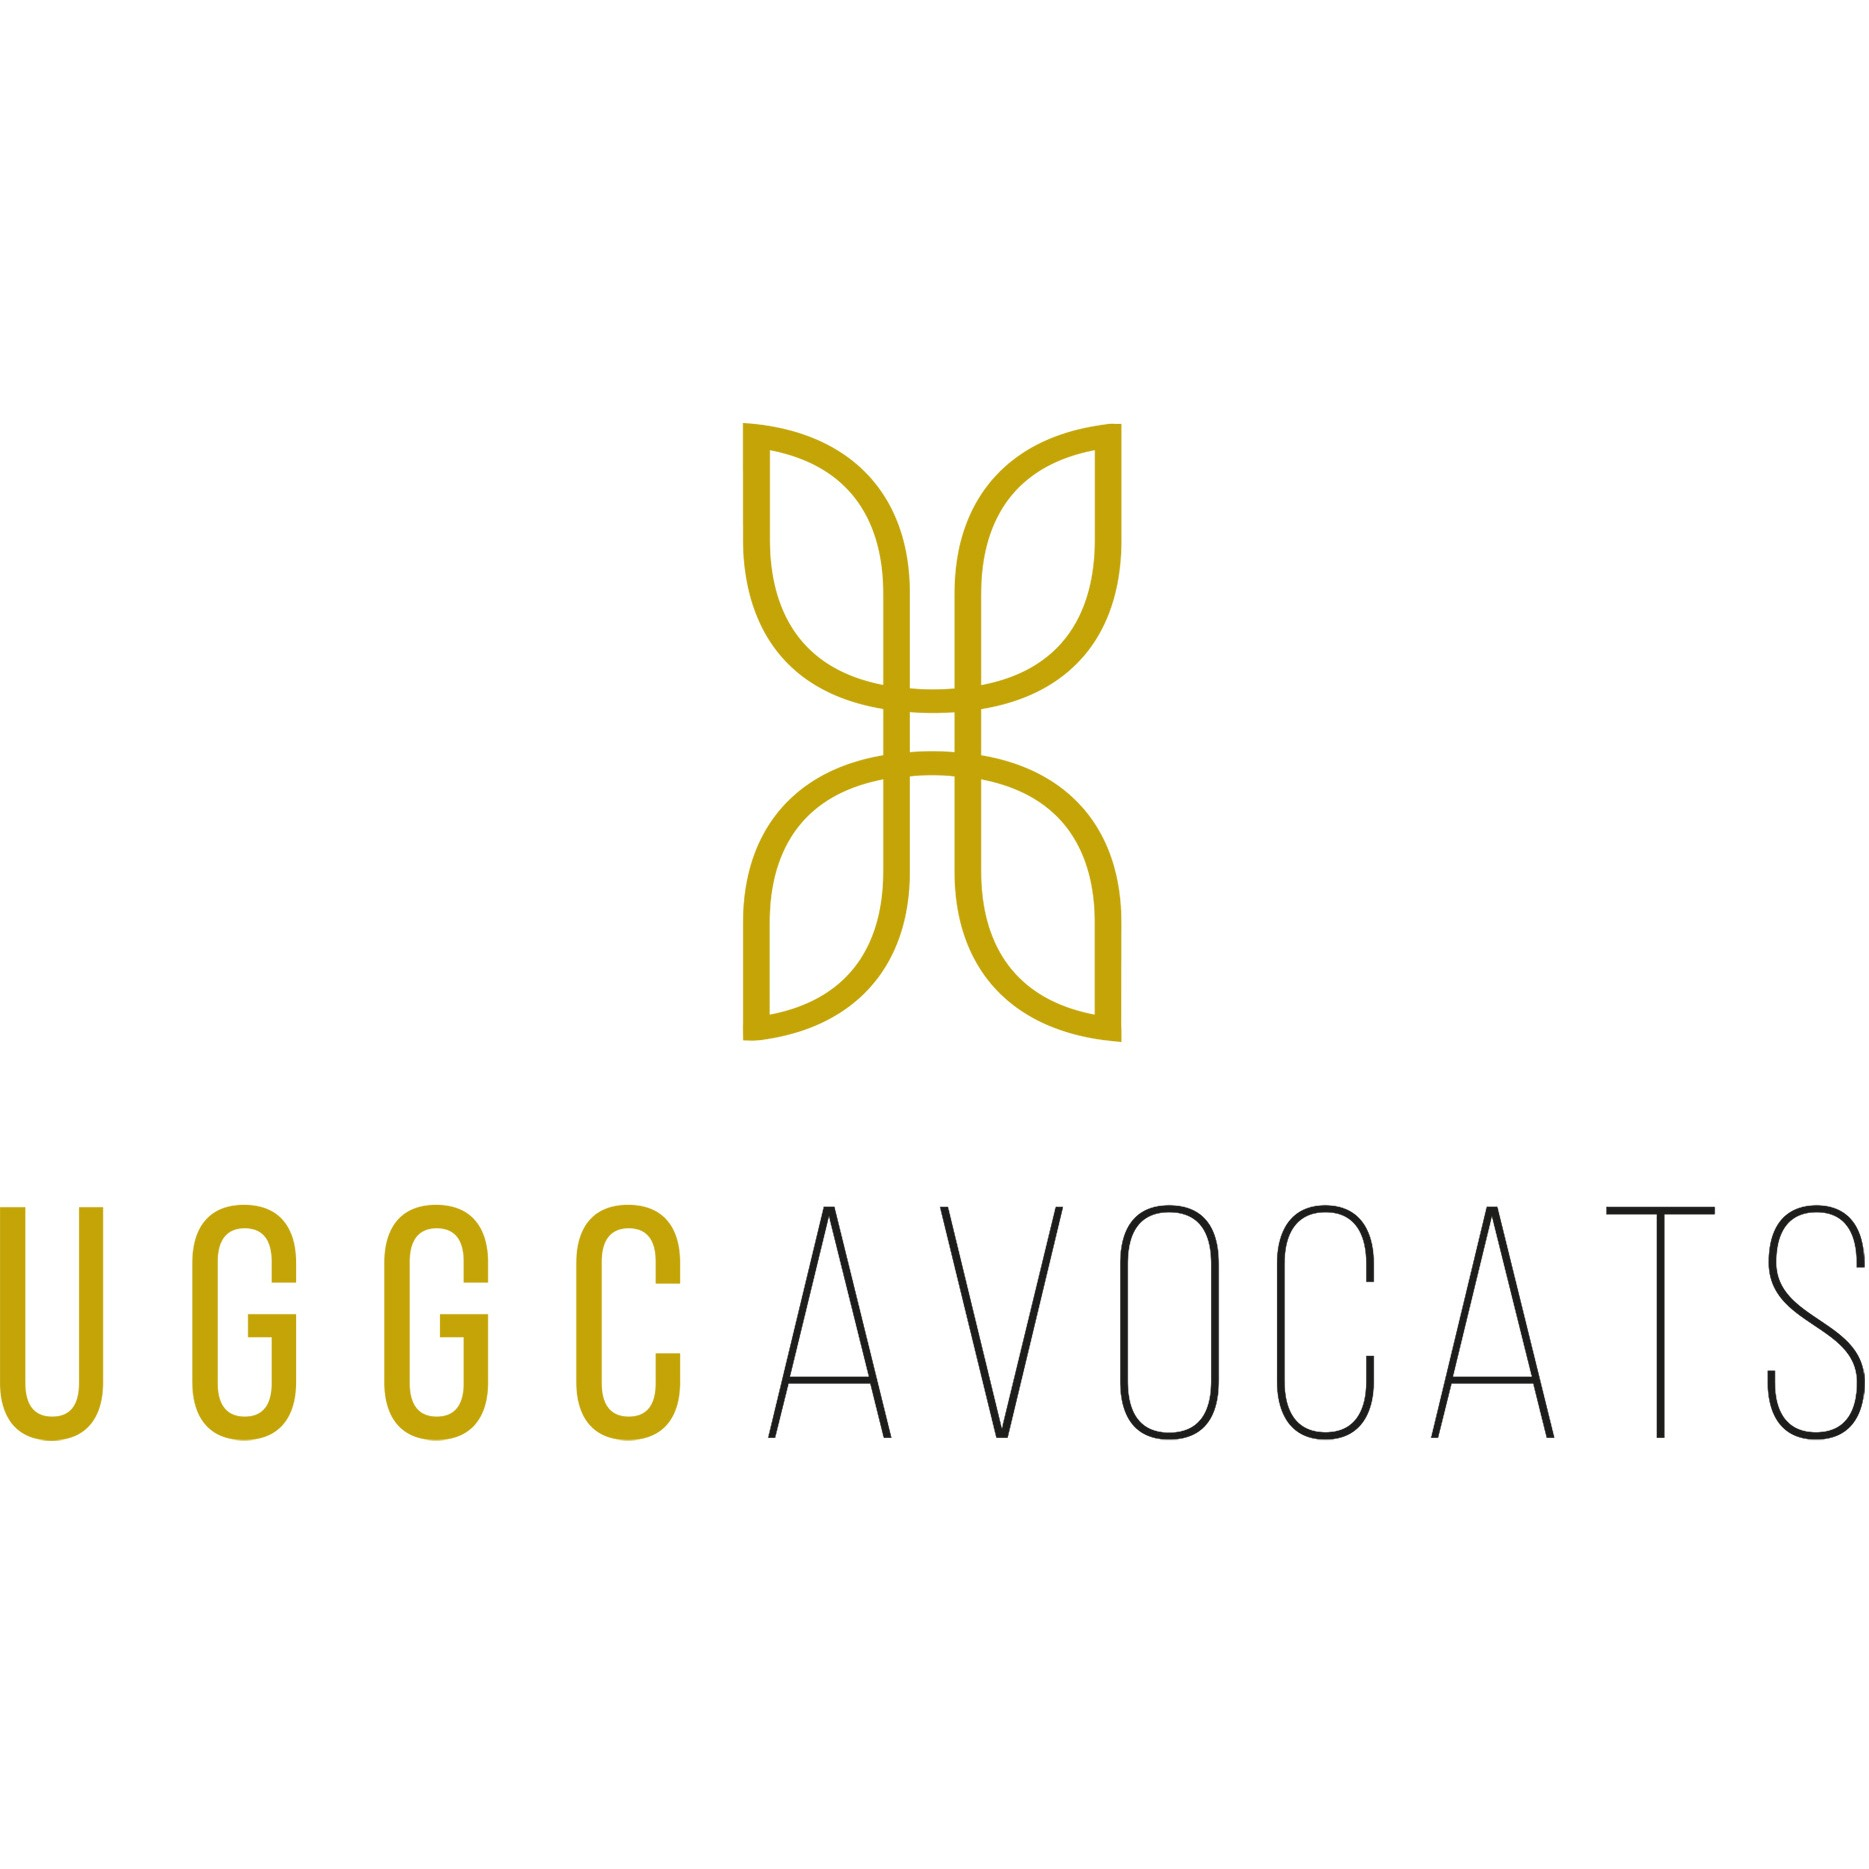 the UGGC Avocats logo.